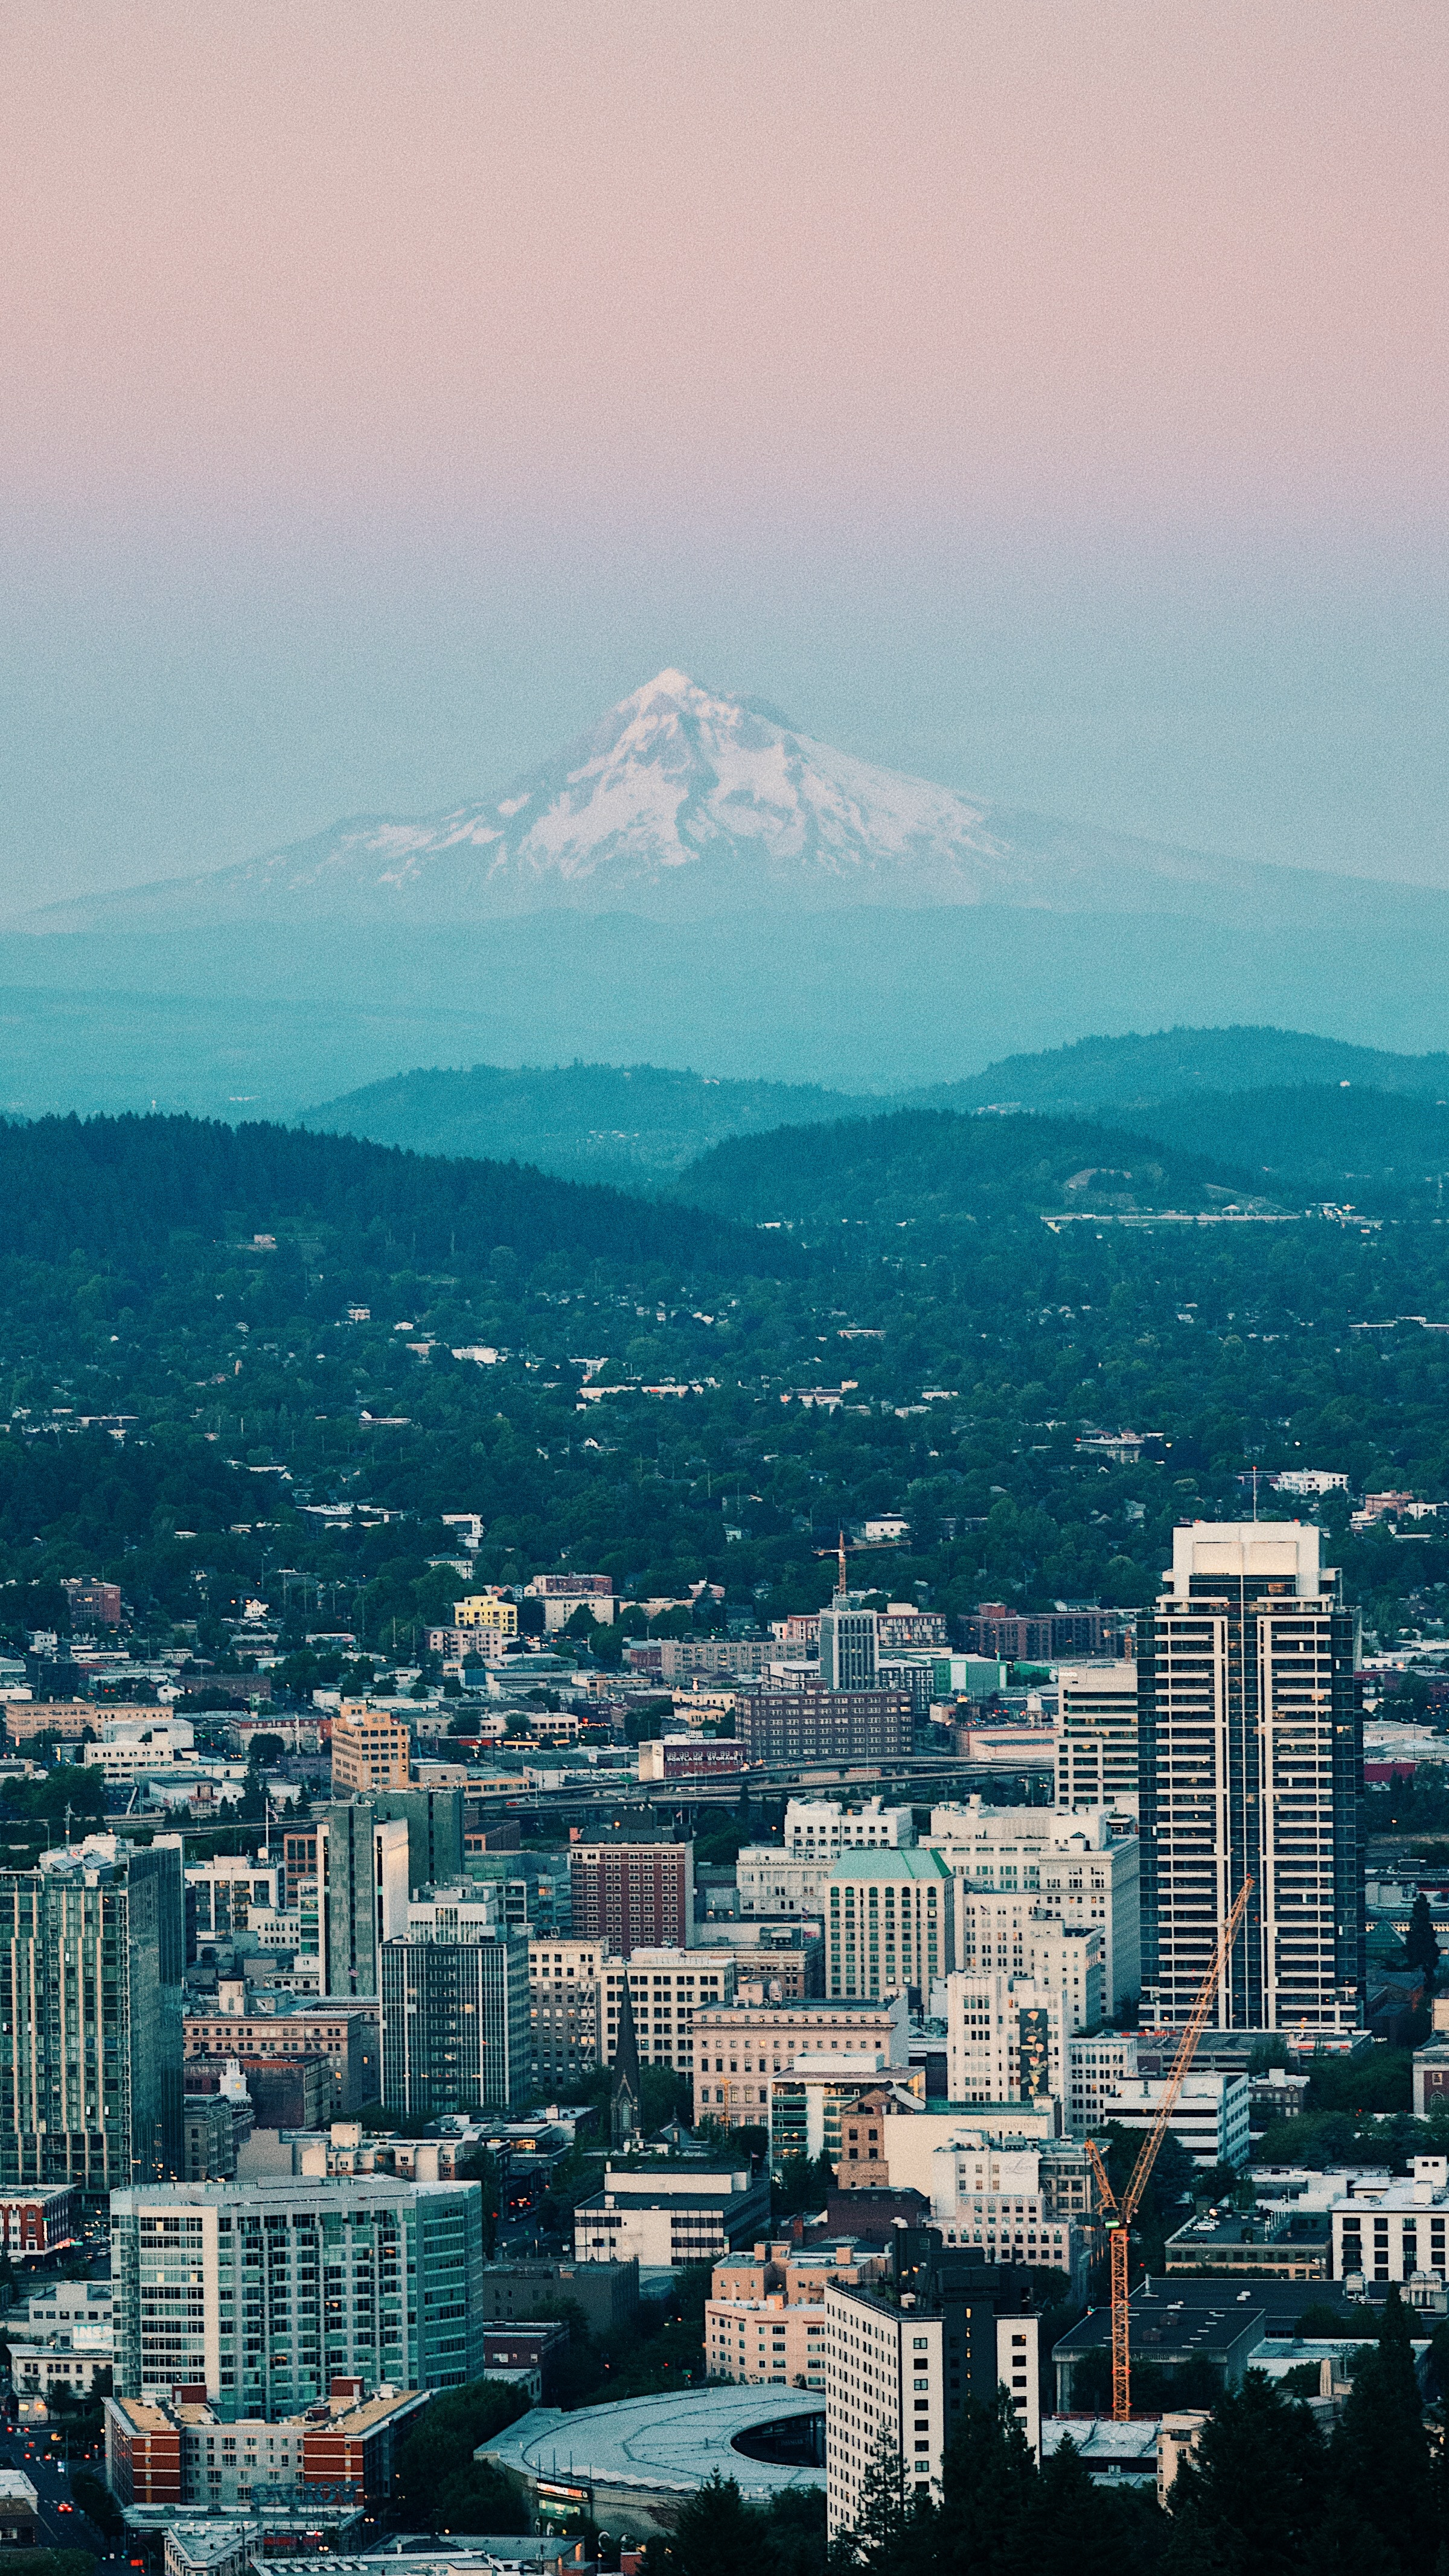 Pittock Mansion Mount views Portland Oregon